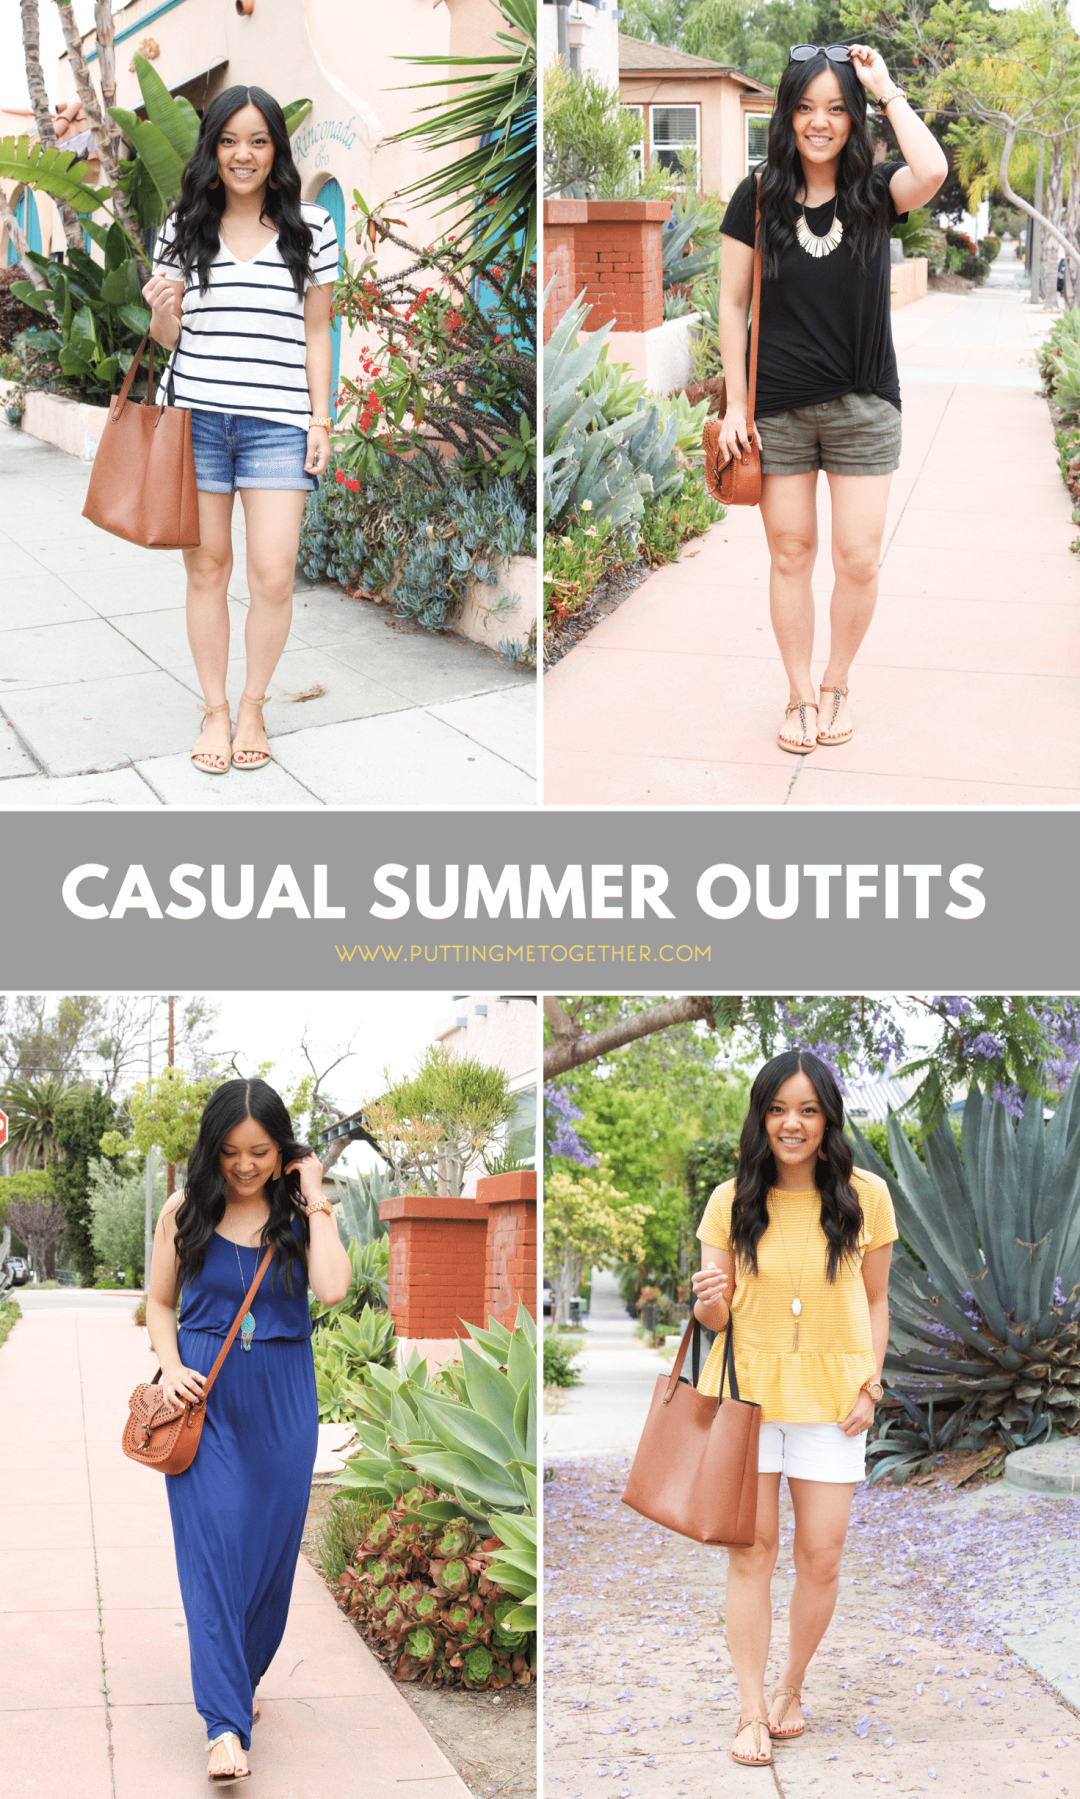 Casual Summer Outfits